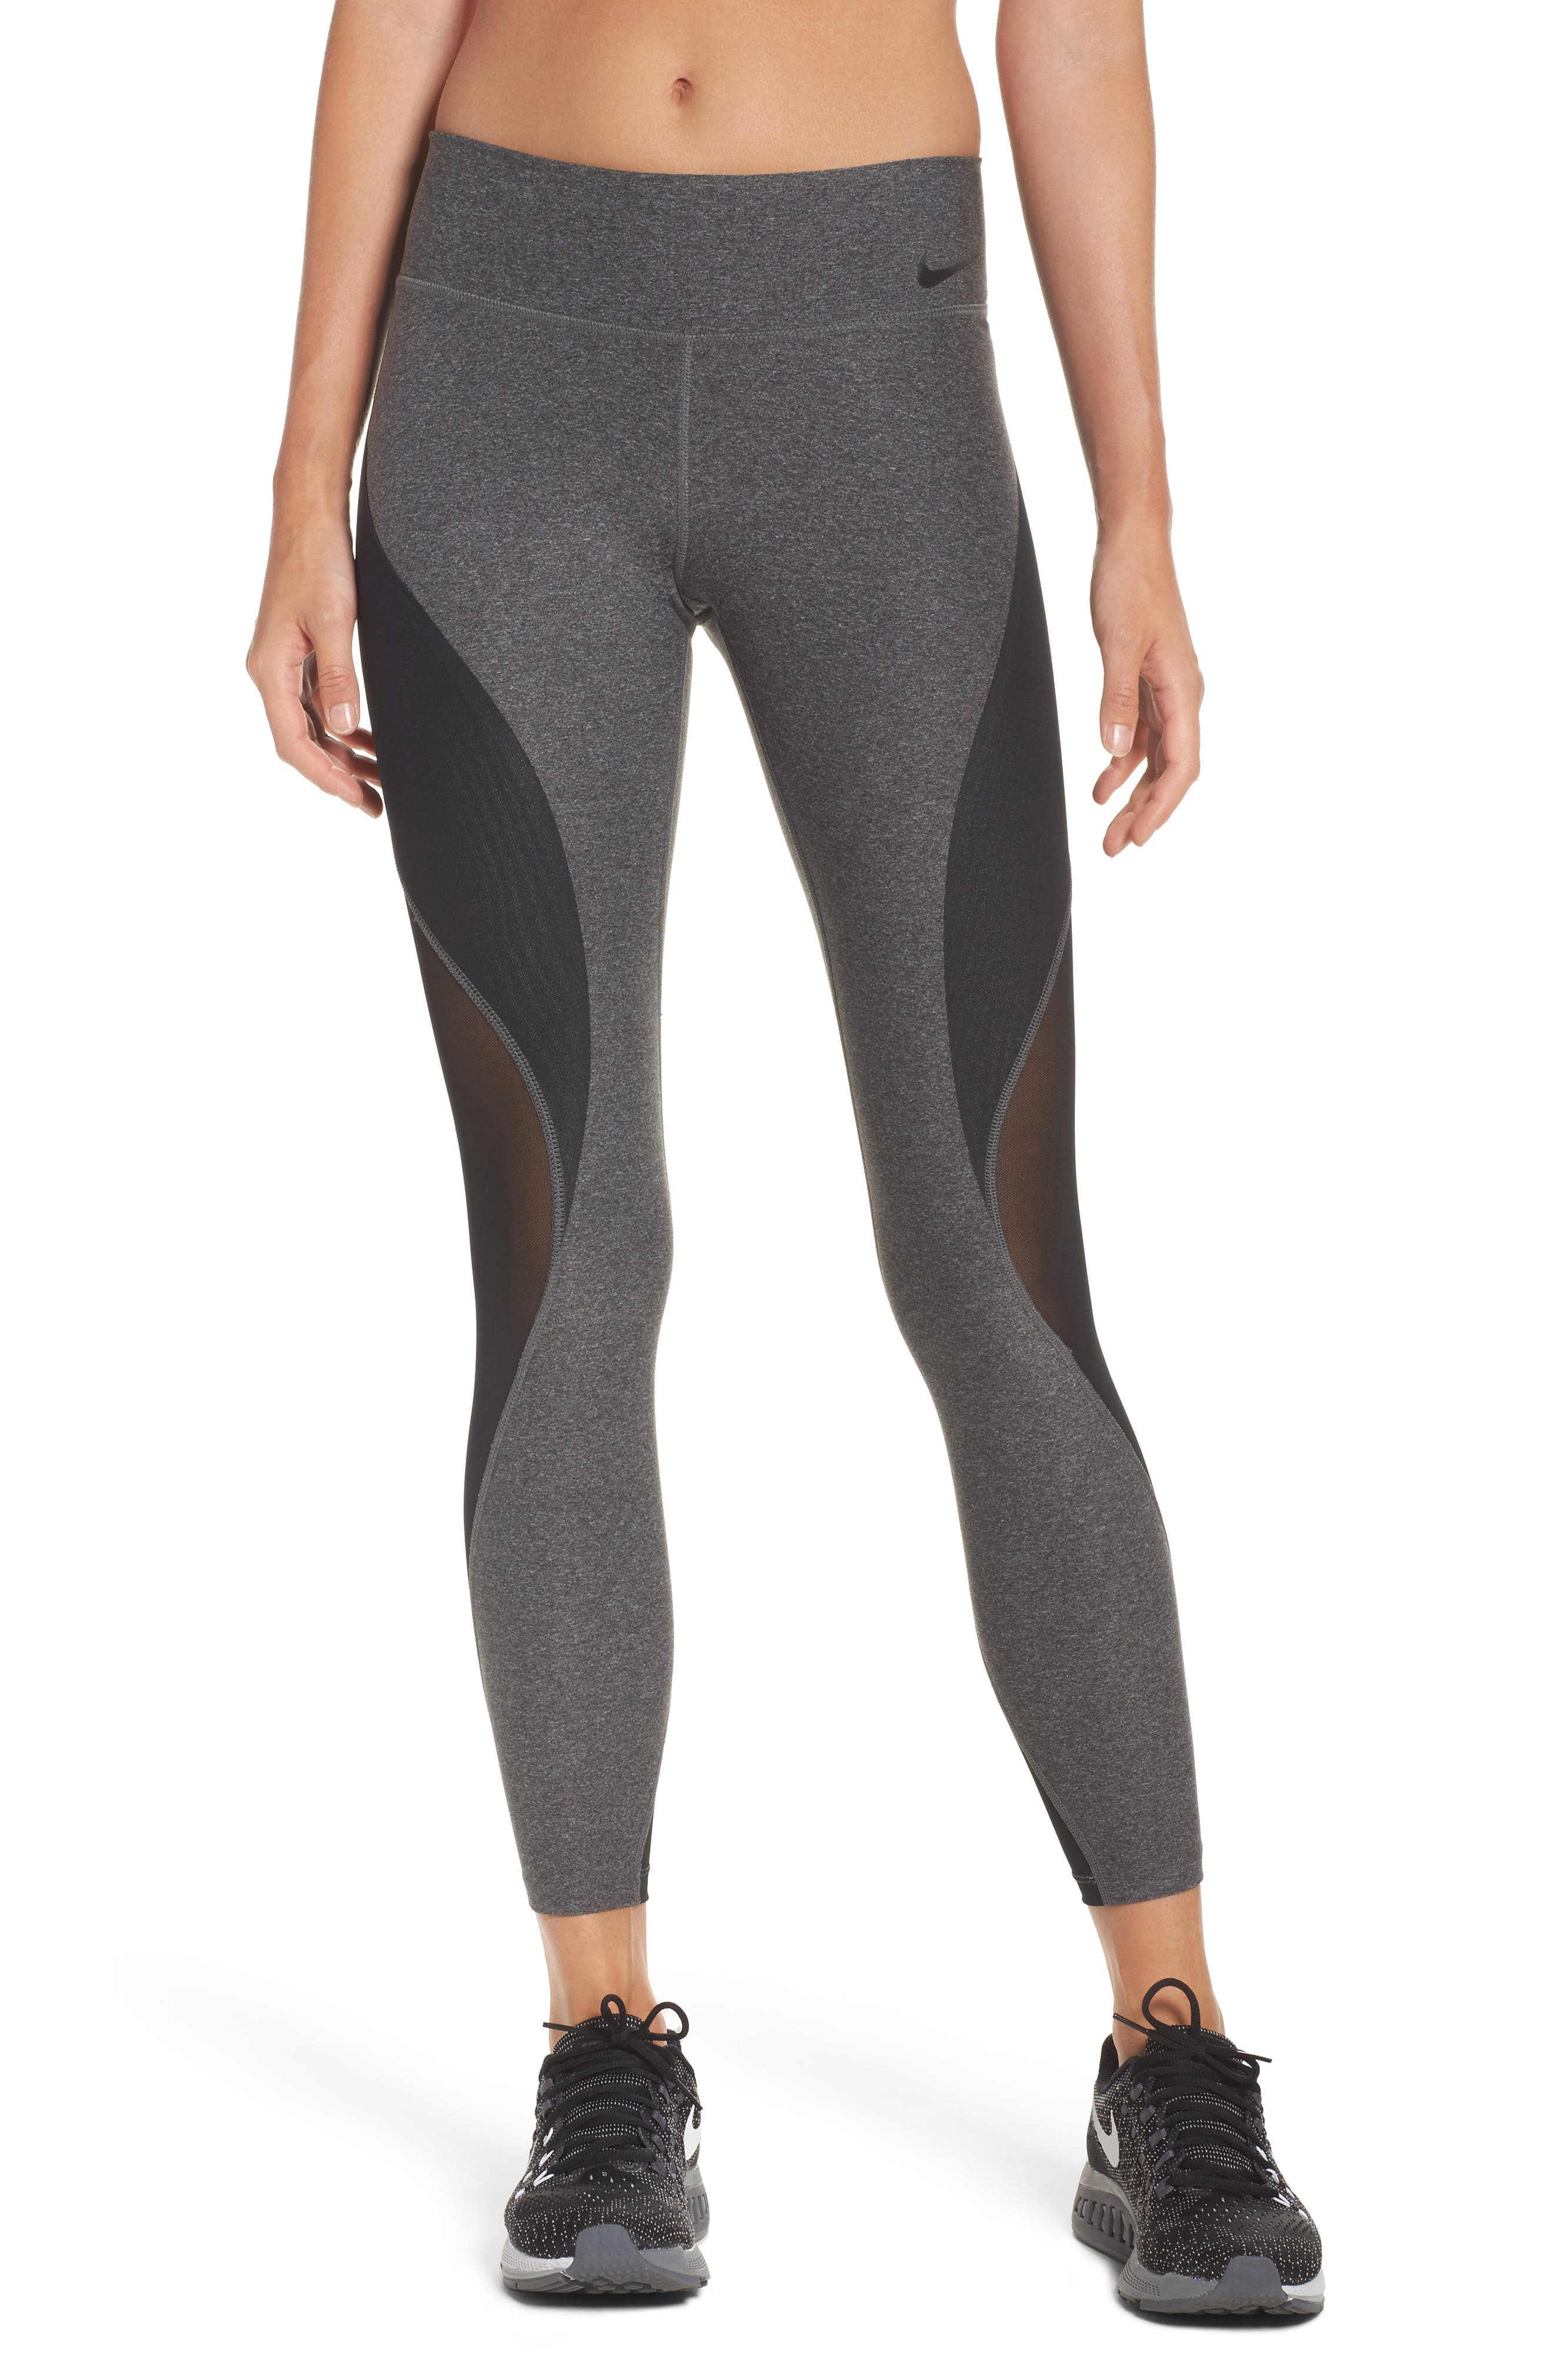 Power Legend Training Tights,                         Main,                         color, Charcoal Heather/ Black/ White